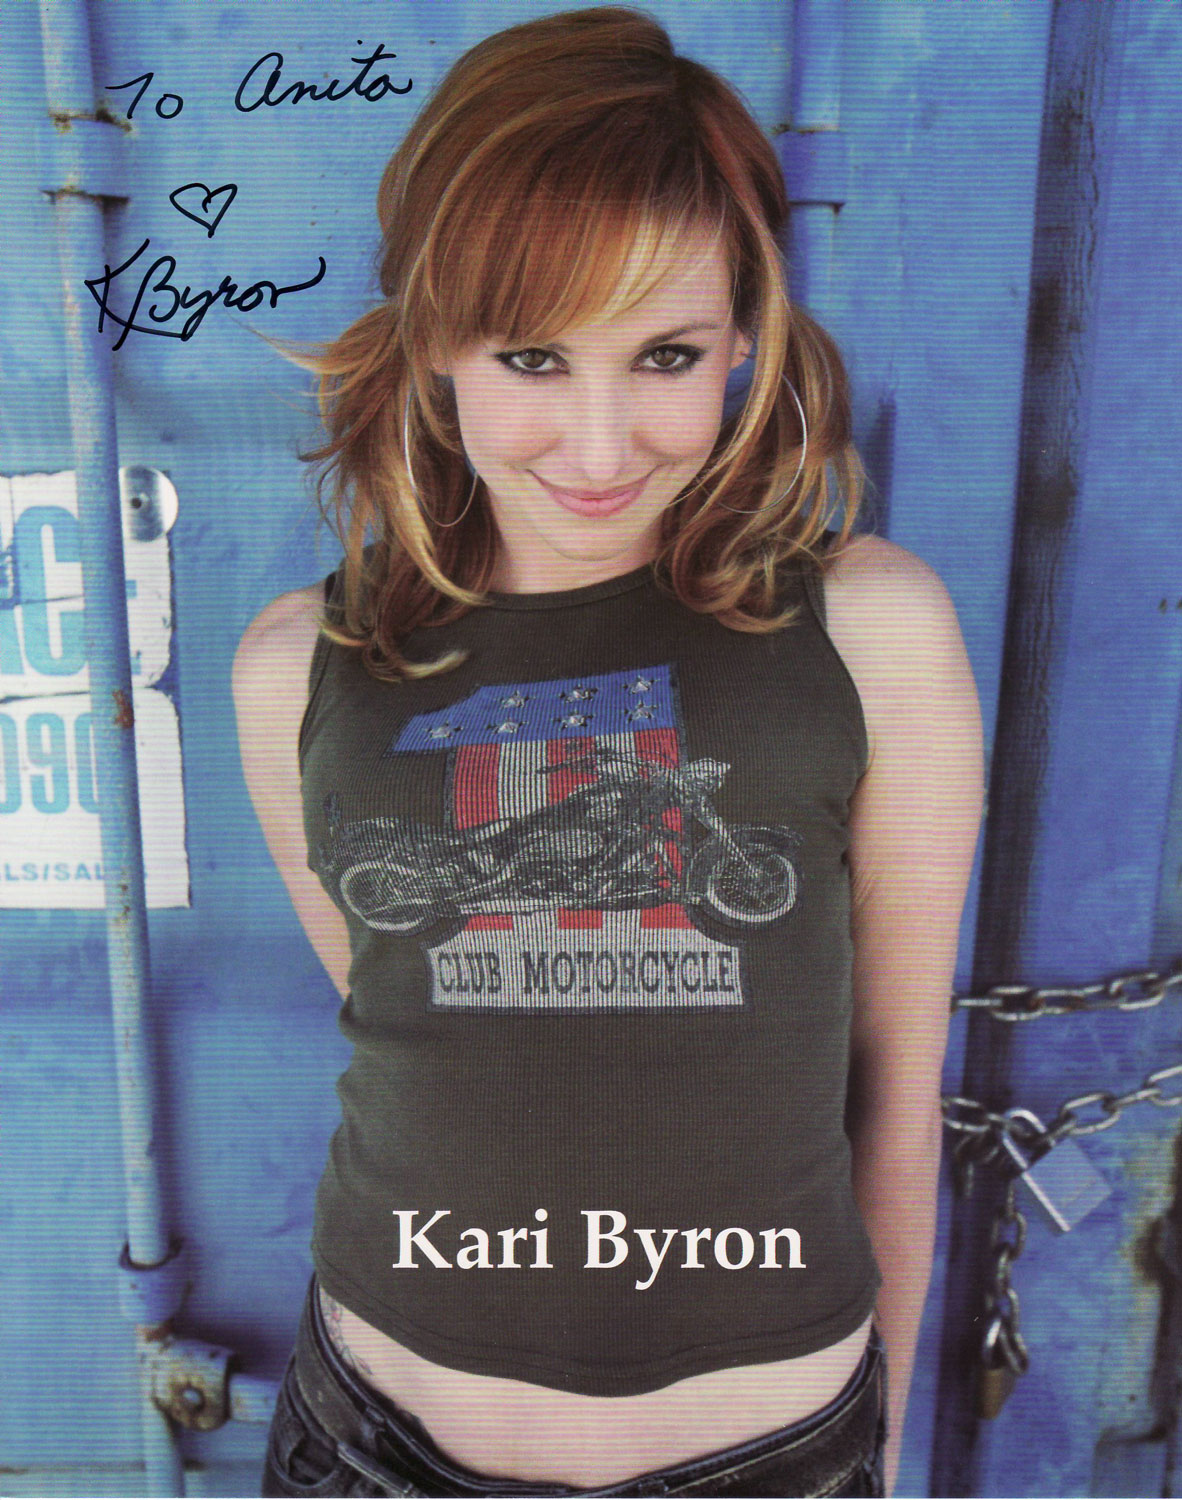 Kari Byron   Kari Byron Photo  29679344    Fanpop fanclubs